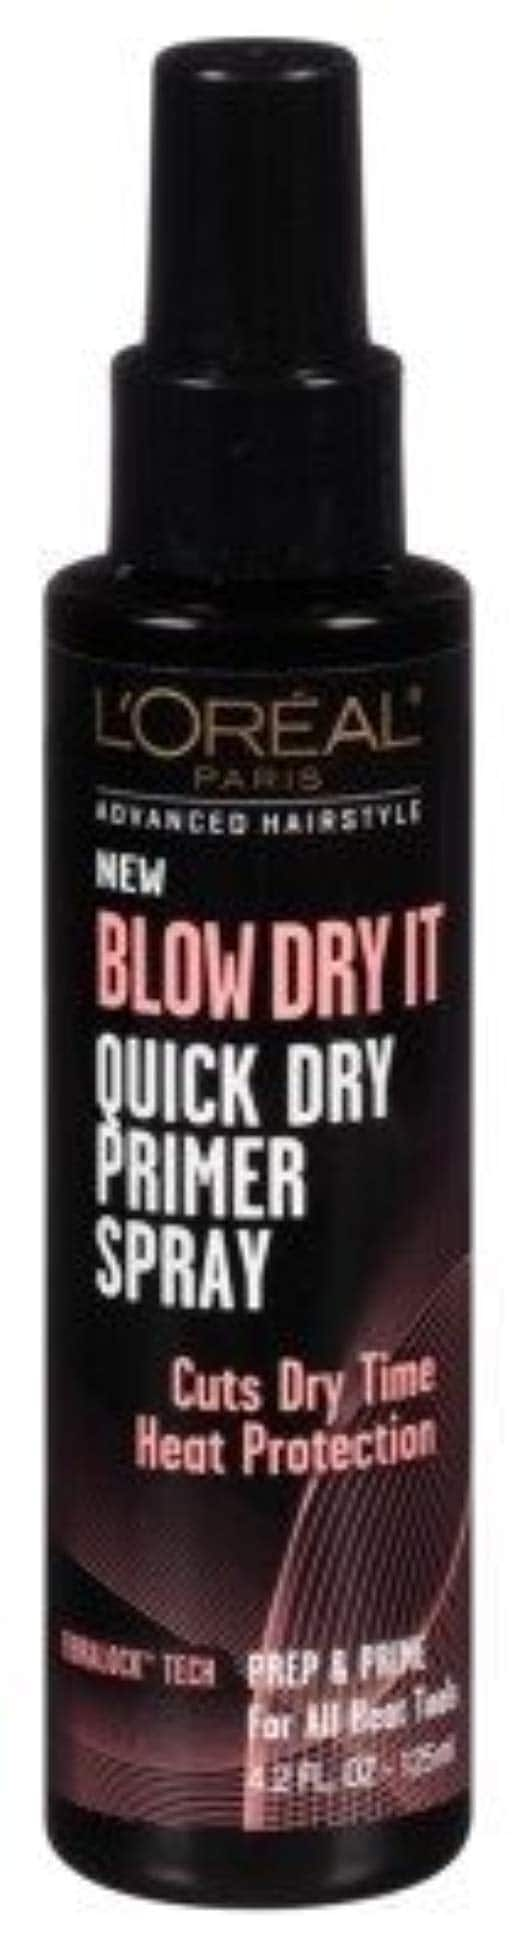 4.2-oz L'Oreal BLOW DRY IT Quick Dry Primer Spray $3.22 w/ S&S + Free Shipping